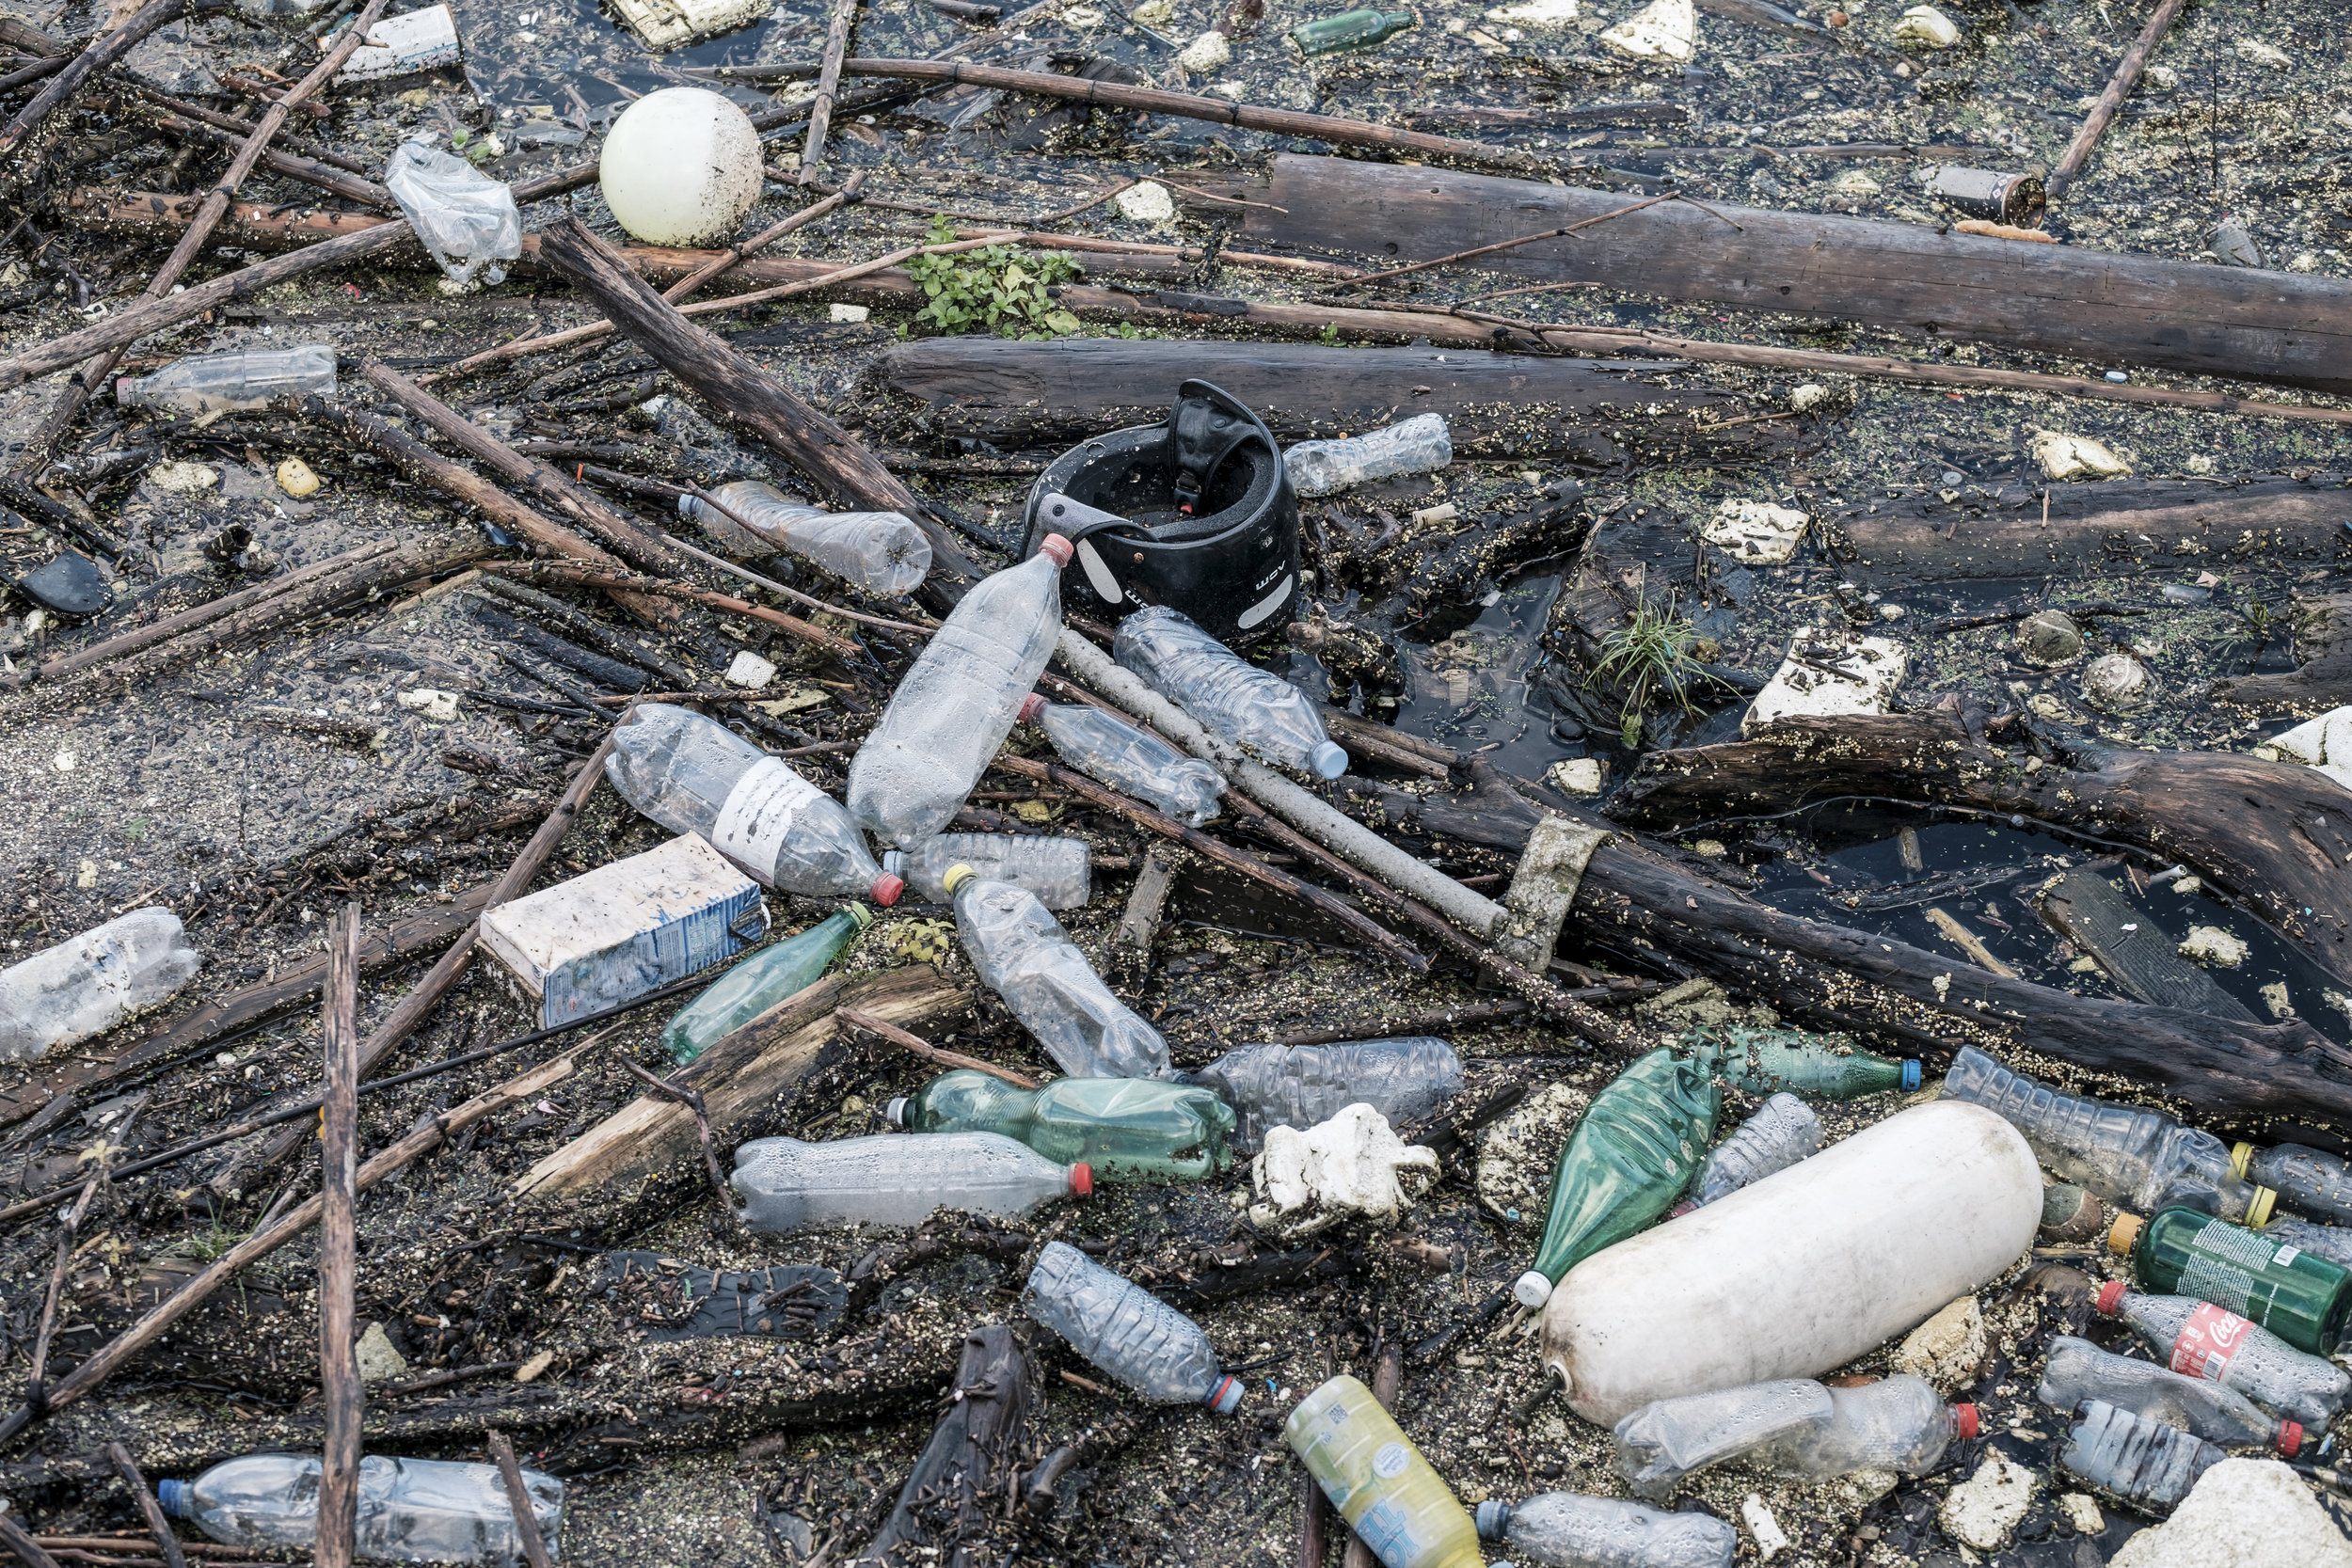 Plastic is Forever - Plastic was designed to be malleable and durable, and since the 1950's, we have created 9.2 billion tons of it. Plastic doesn't go away, or biodegrade, but breaks down into smaller and smaller particles, called Microplastics. Every plastic ever created still exists on our earth today.